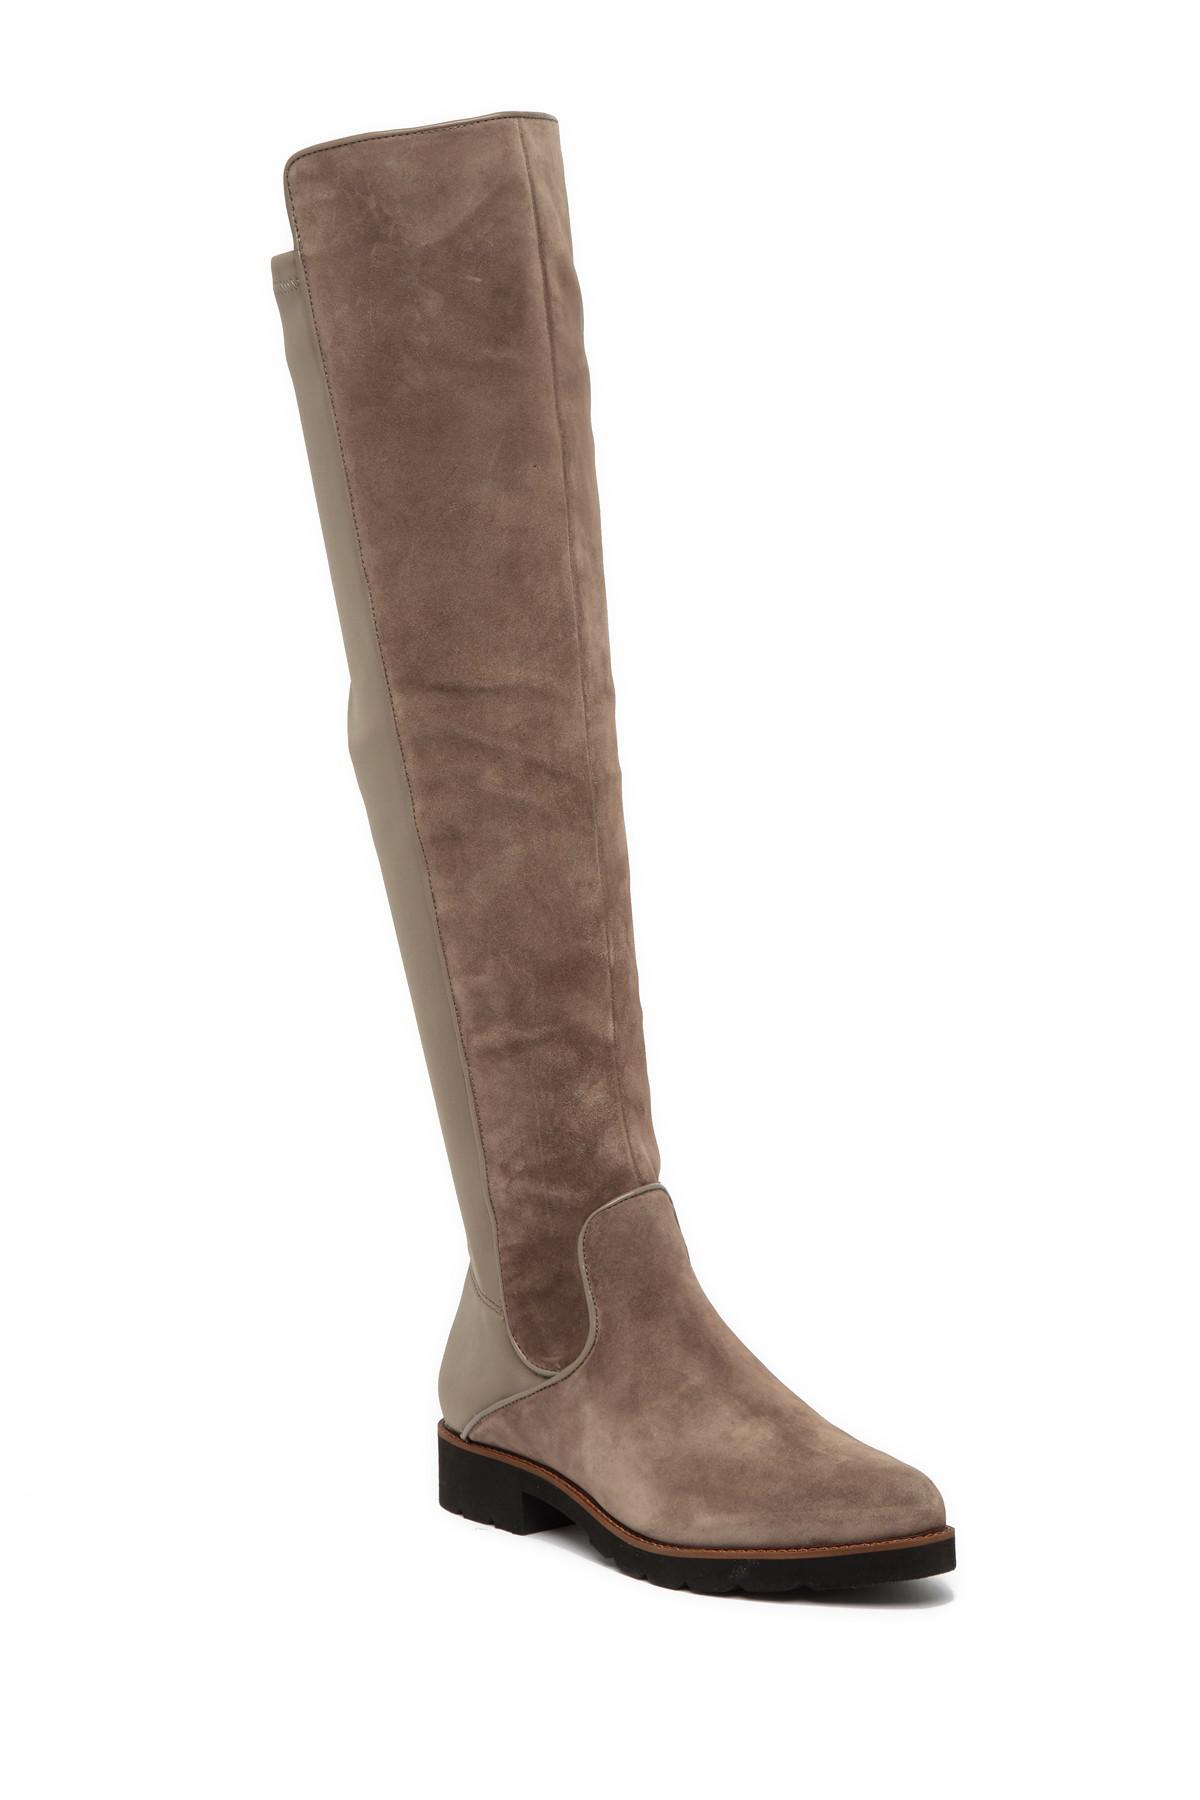 27c0b591549 Lyst - Franco Sarto Benner Leather Over-the-knee Boot in Brown